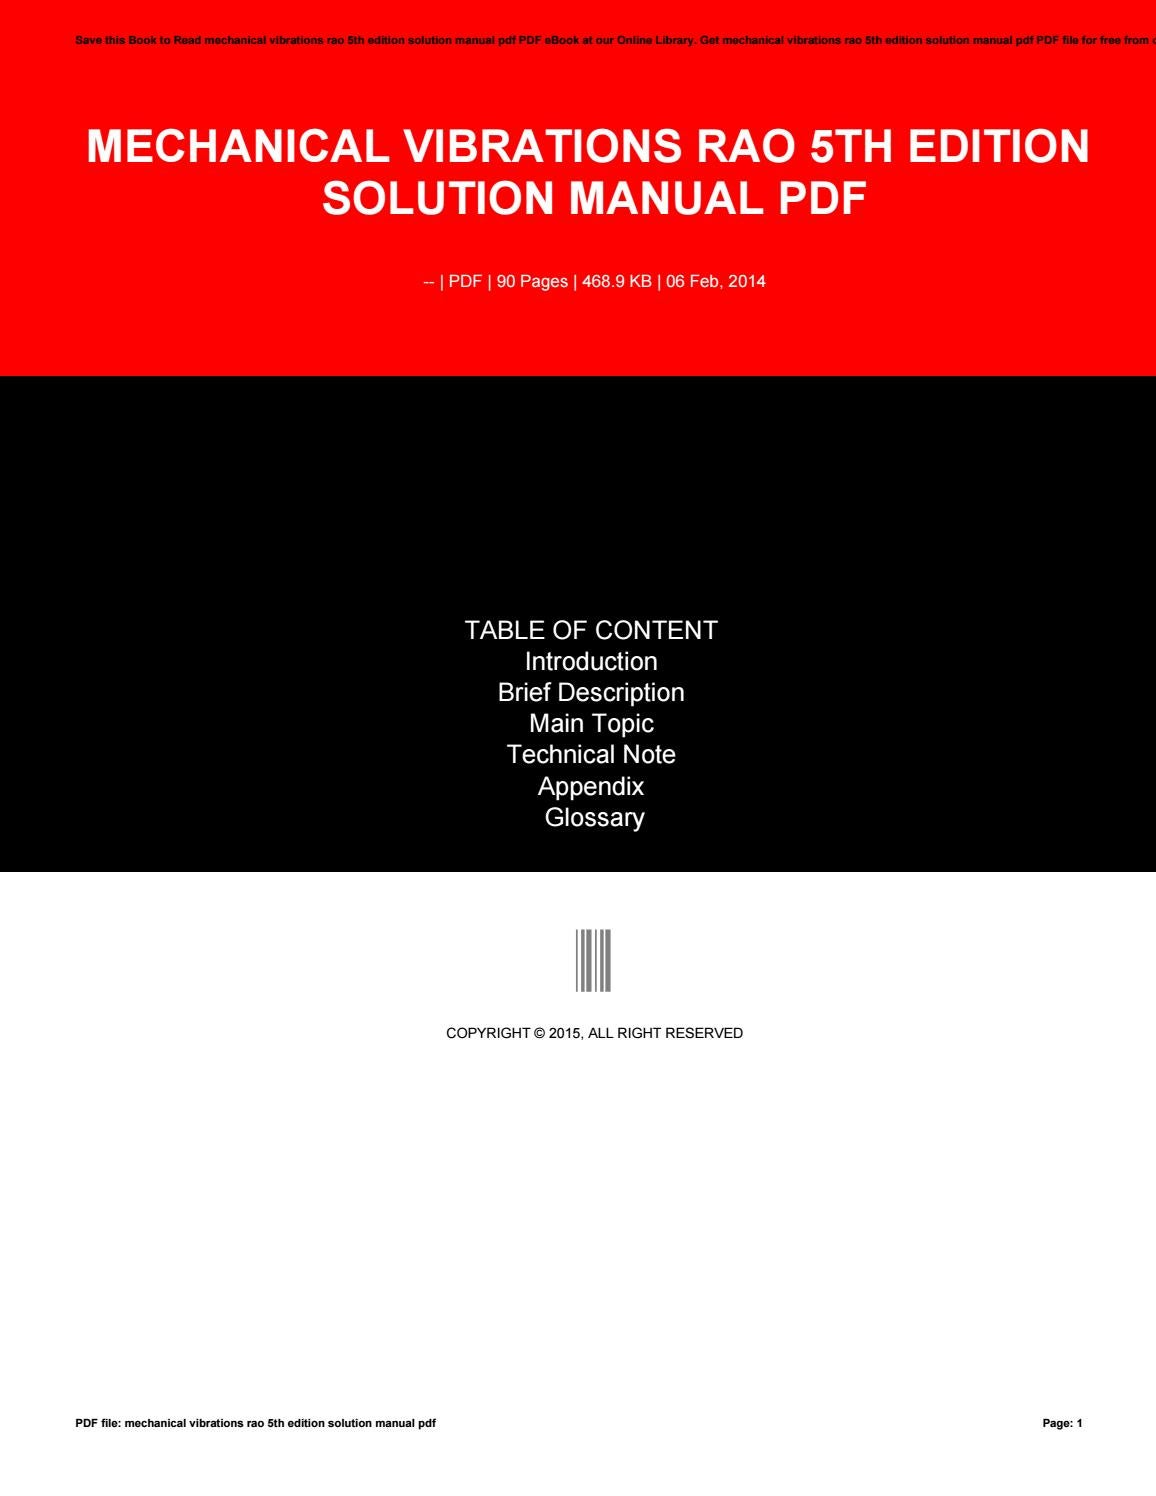 Mechanical vibrations rao 5th edition solution manual pdf by  MaryEdwards1696 - issuu